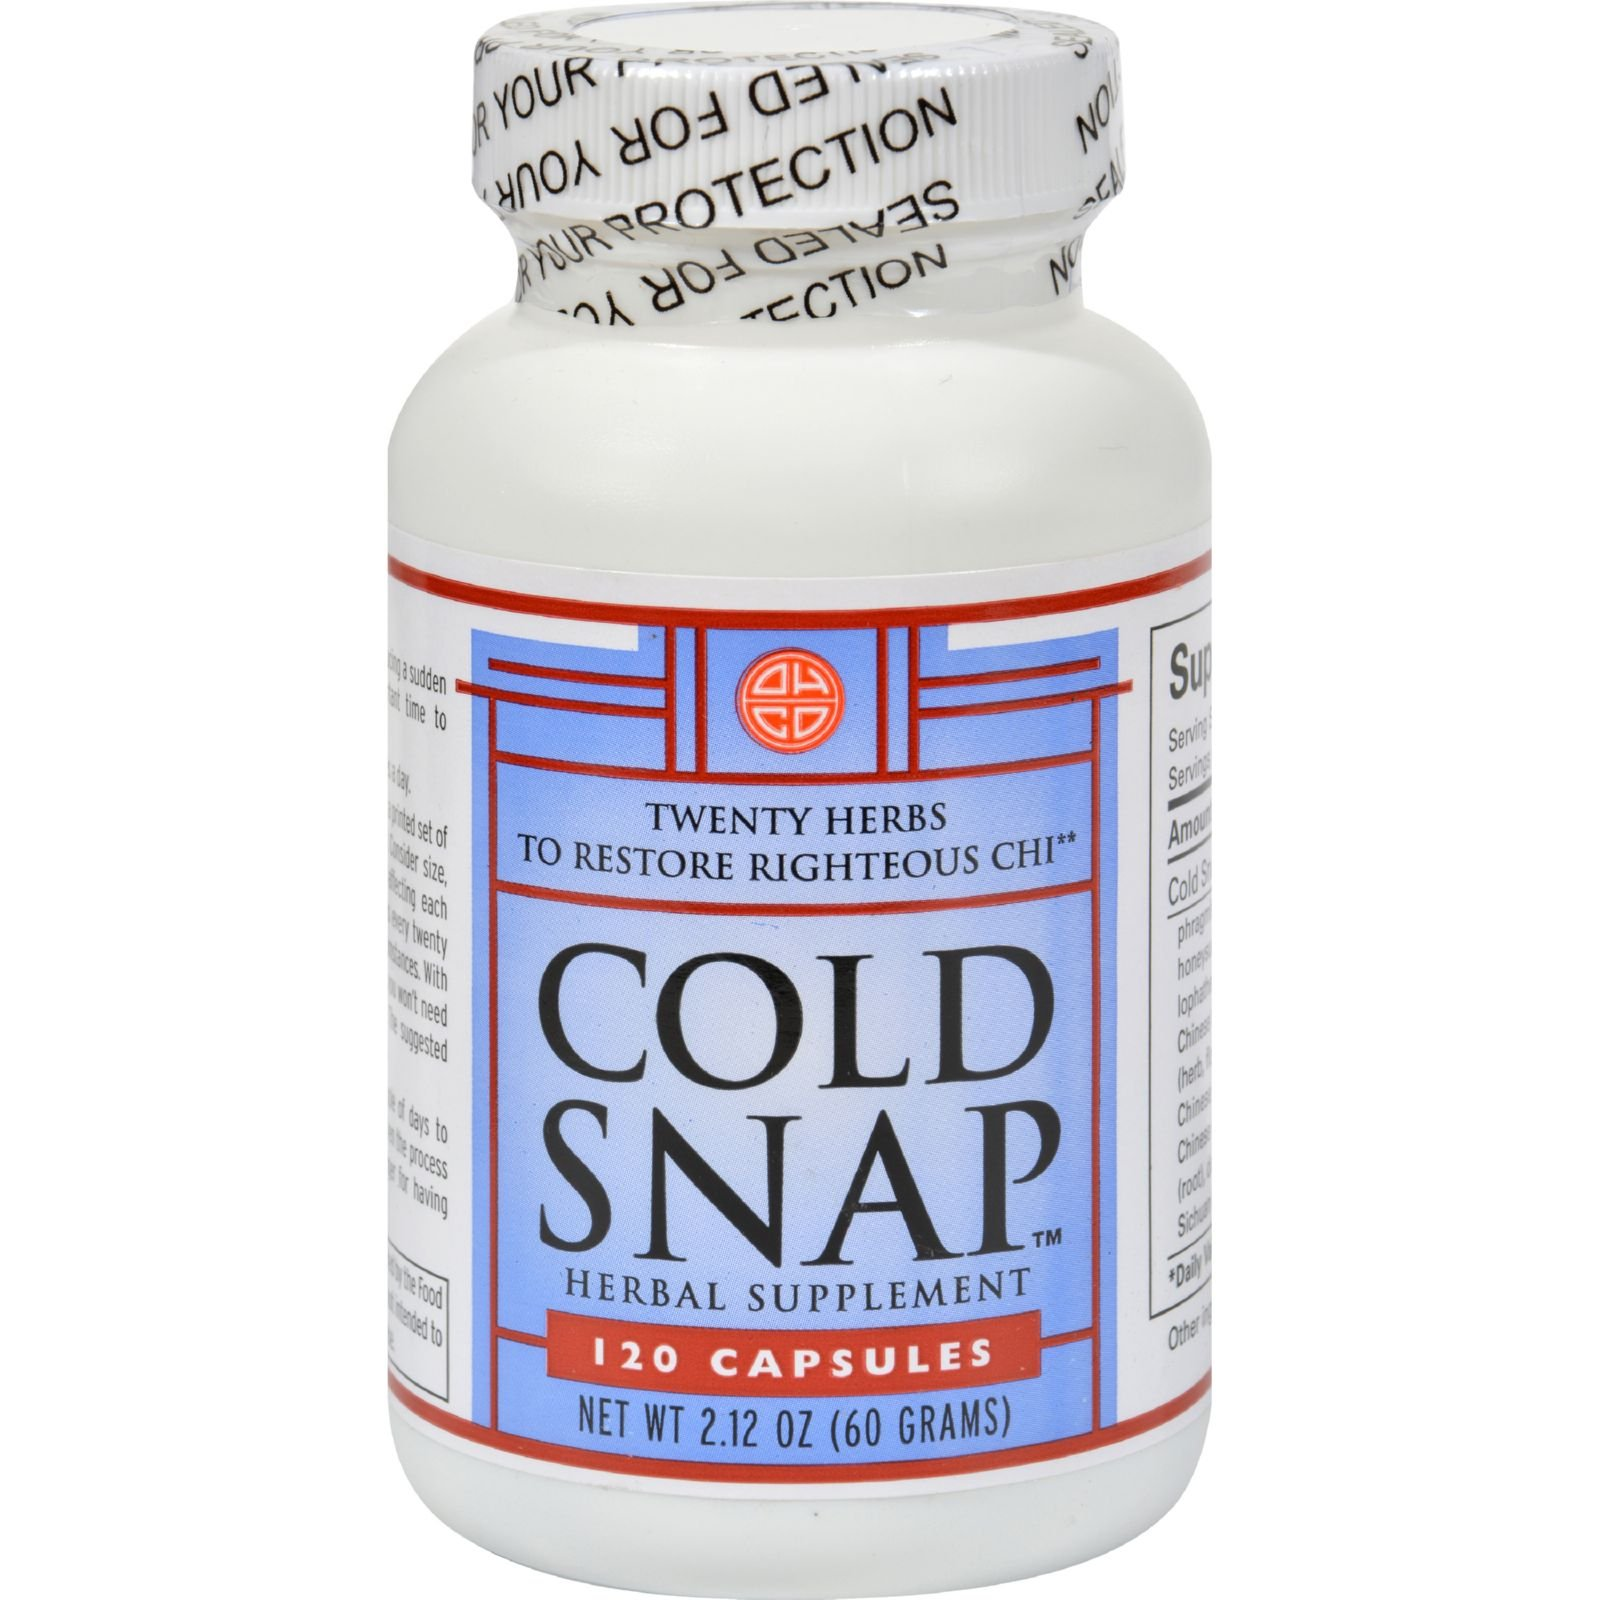 Ohco Cold Snap Caps - Herbal Supplement - 120 Capsules (Pack of 4) by Ohco